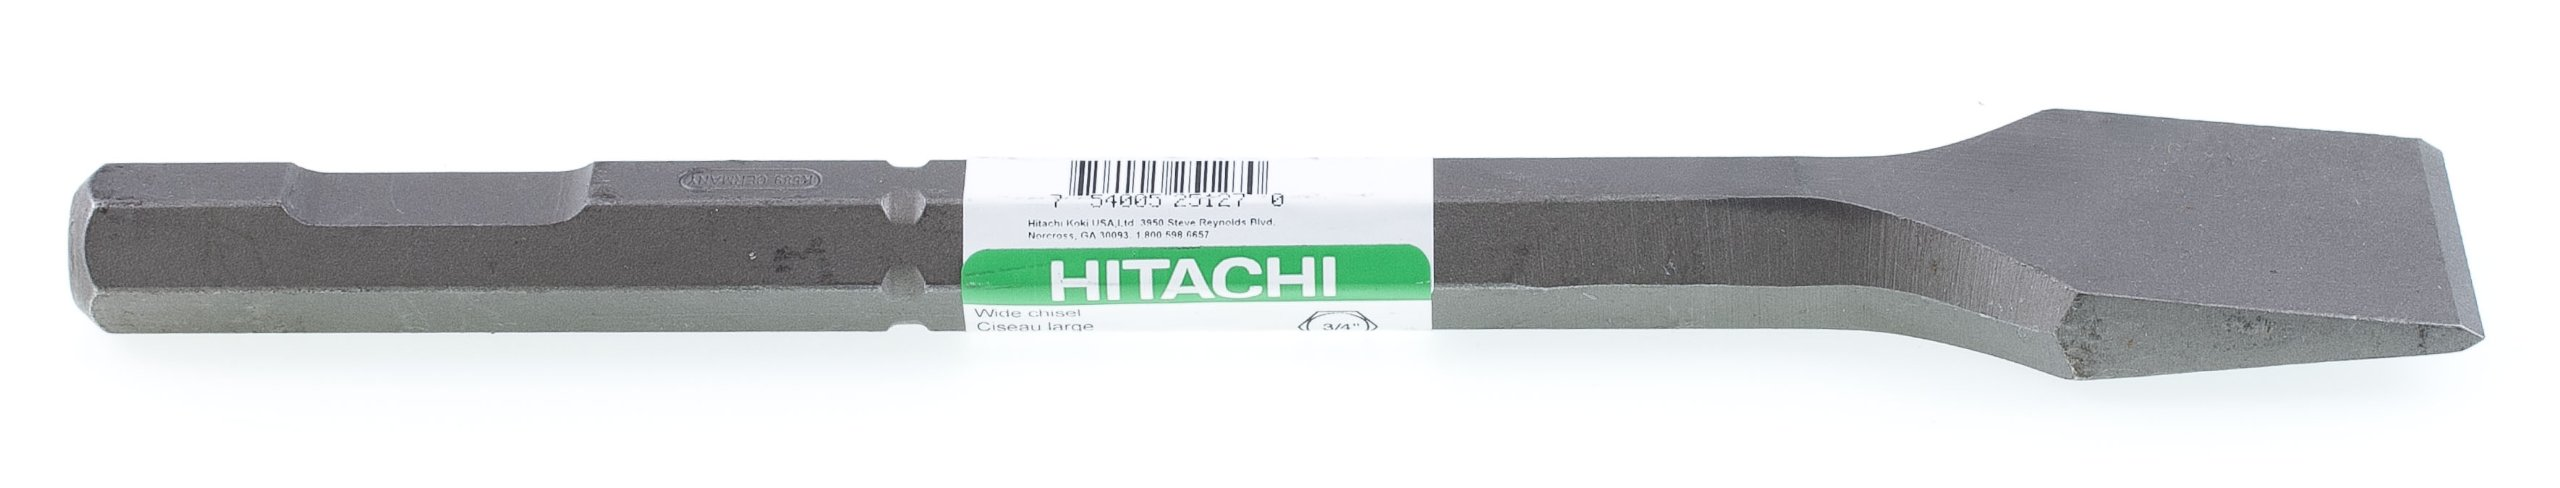 Hitachi 725127 3/4-Inch Hex with 2-Inch by 12-Inch Flat Chisel by Hitachi